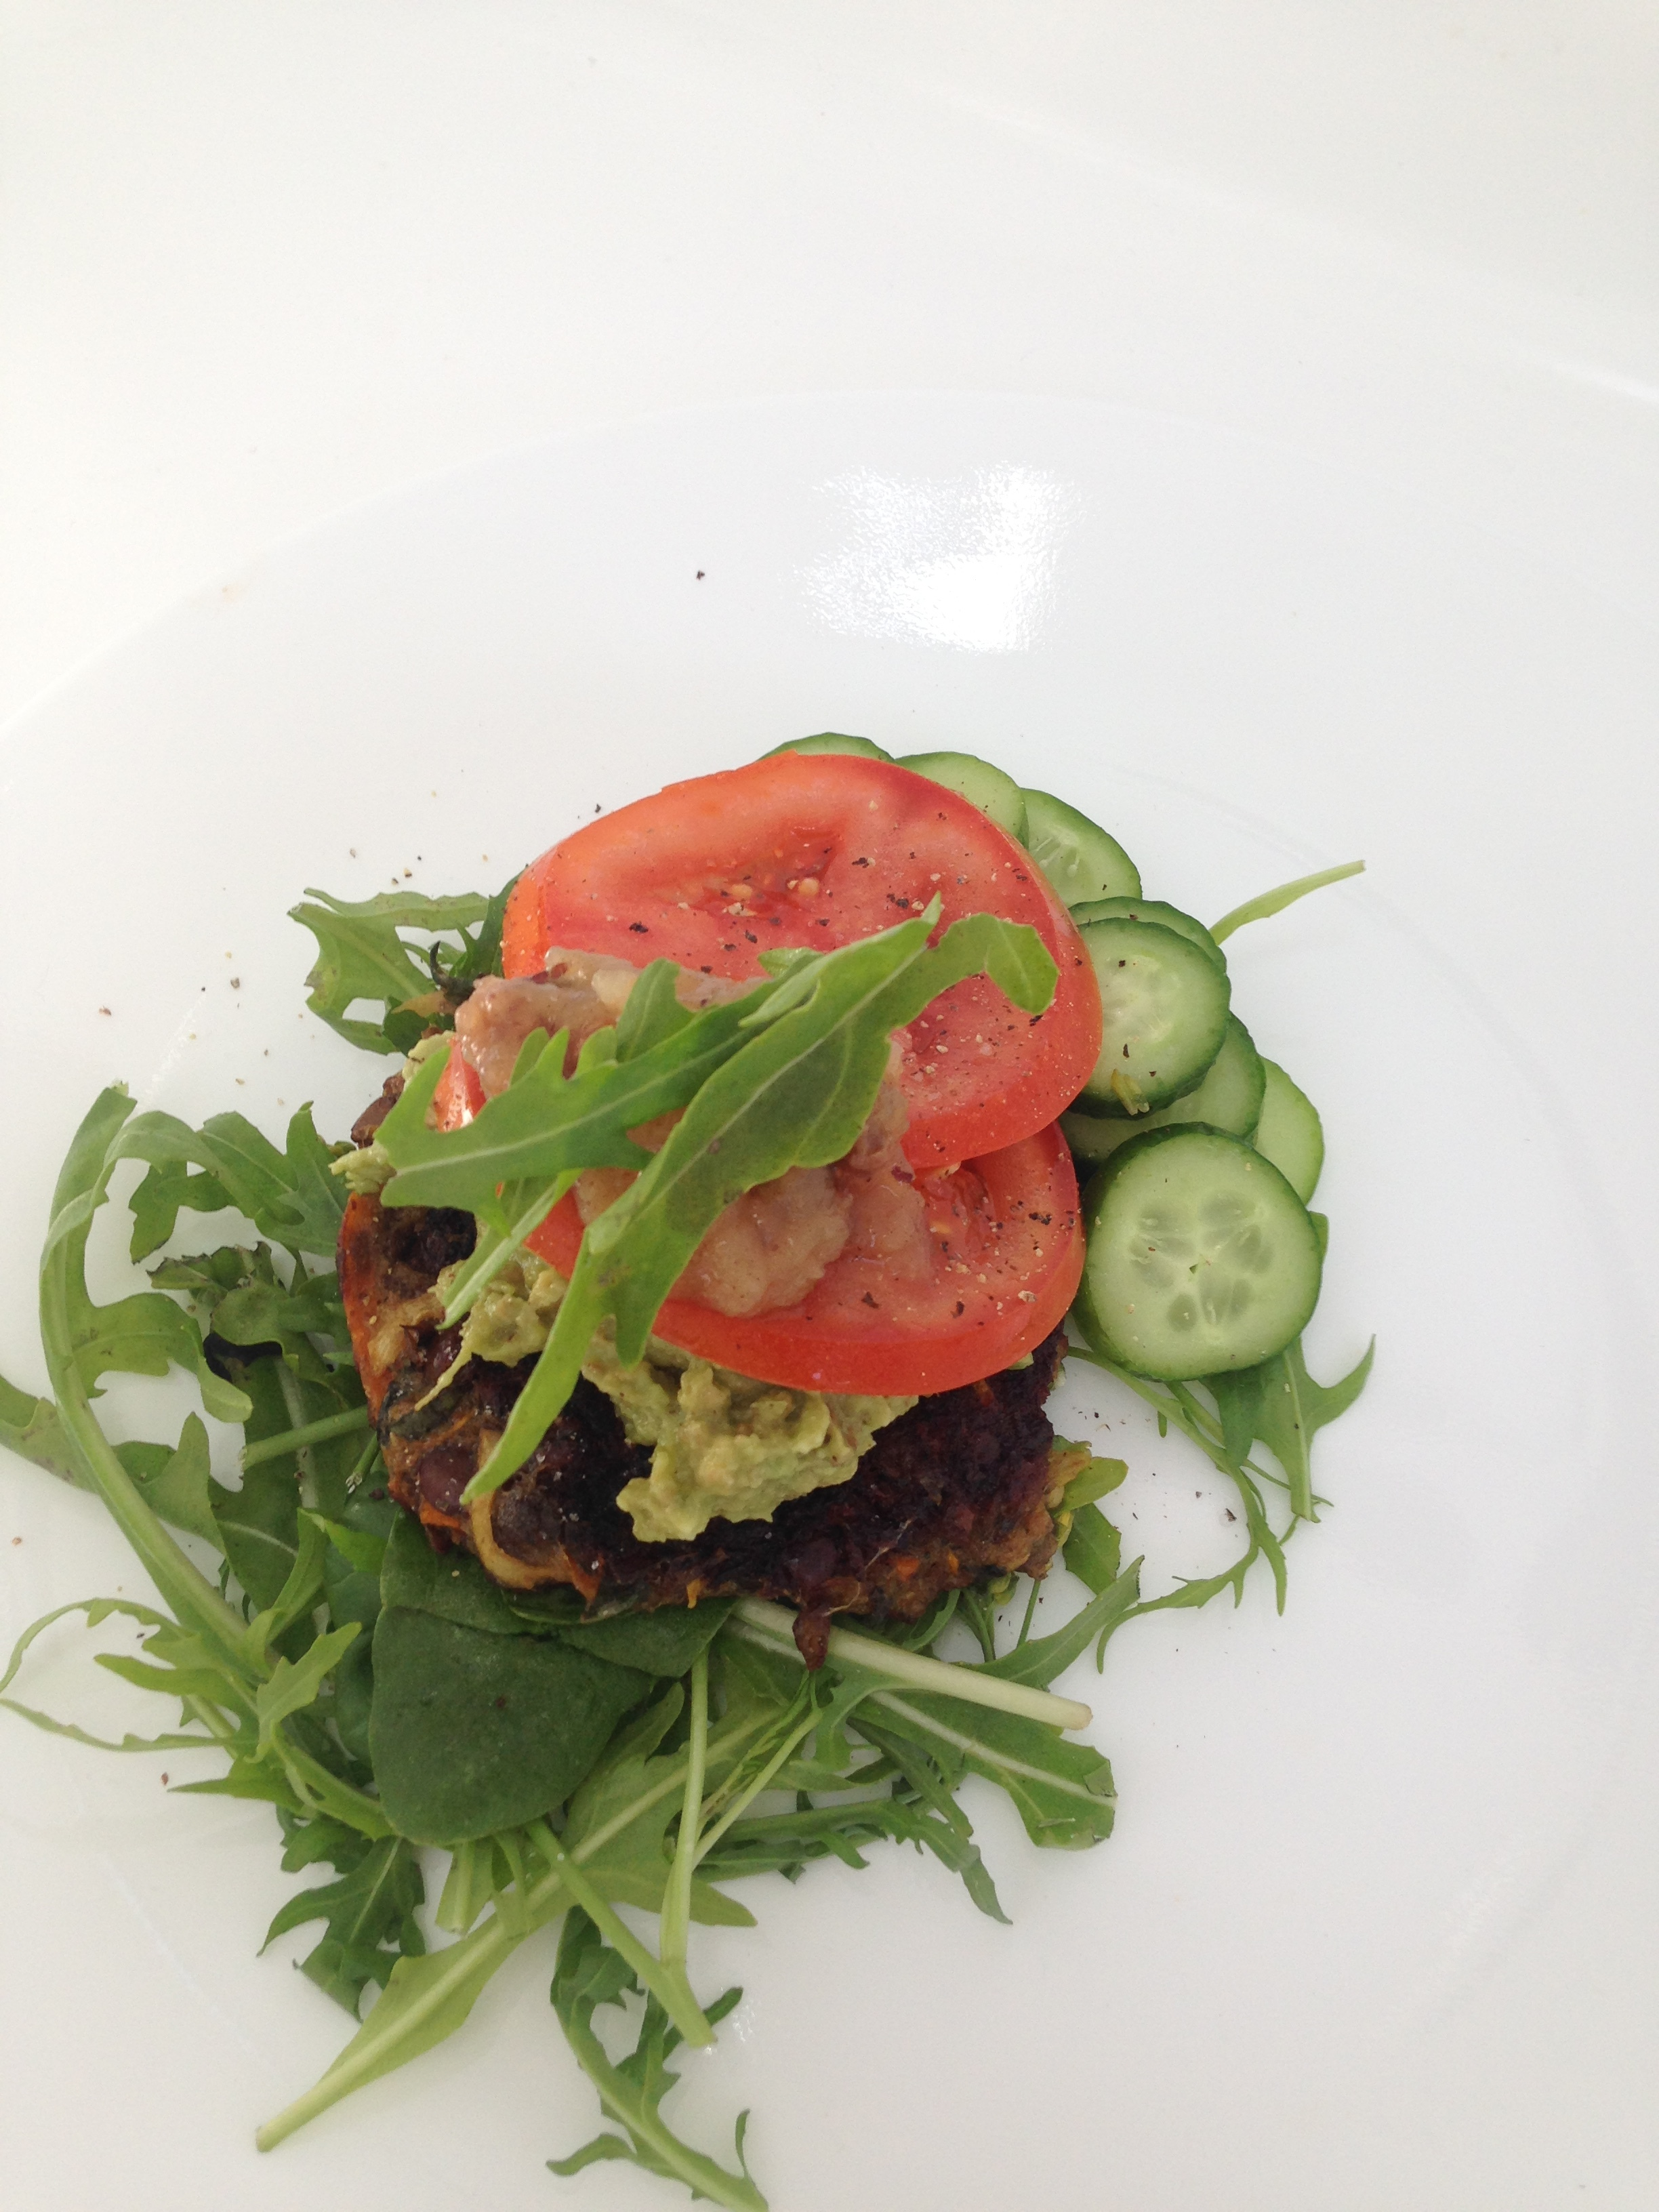 Roam made lentil and Vegetable patties , with a fresh salad ,guacamole, pear and walnut relish. My recipe is at the end of this page.